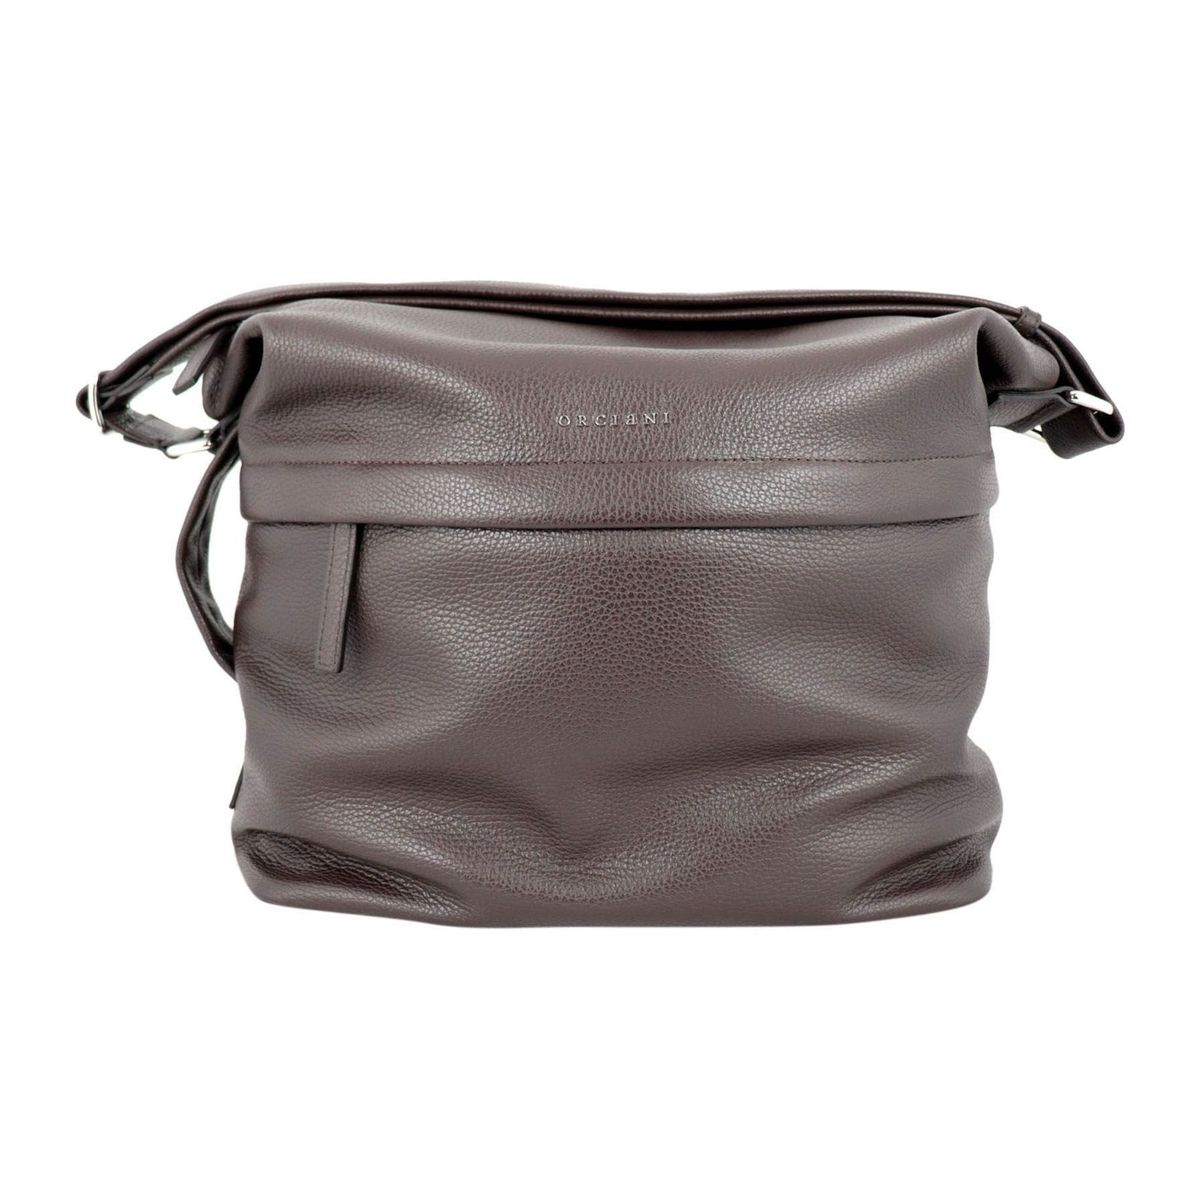 Shoulder bag in textured leather Ebony Orciani